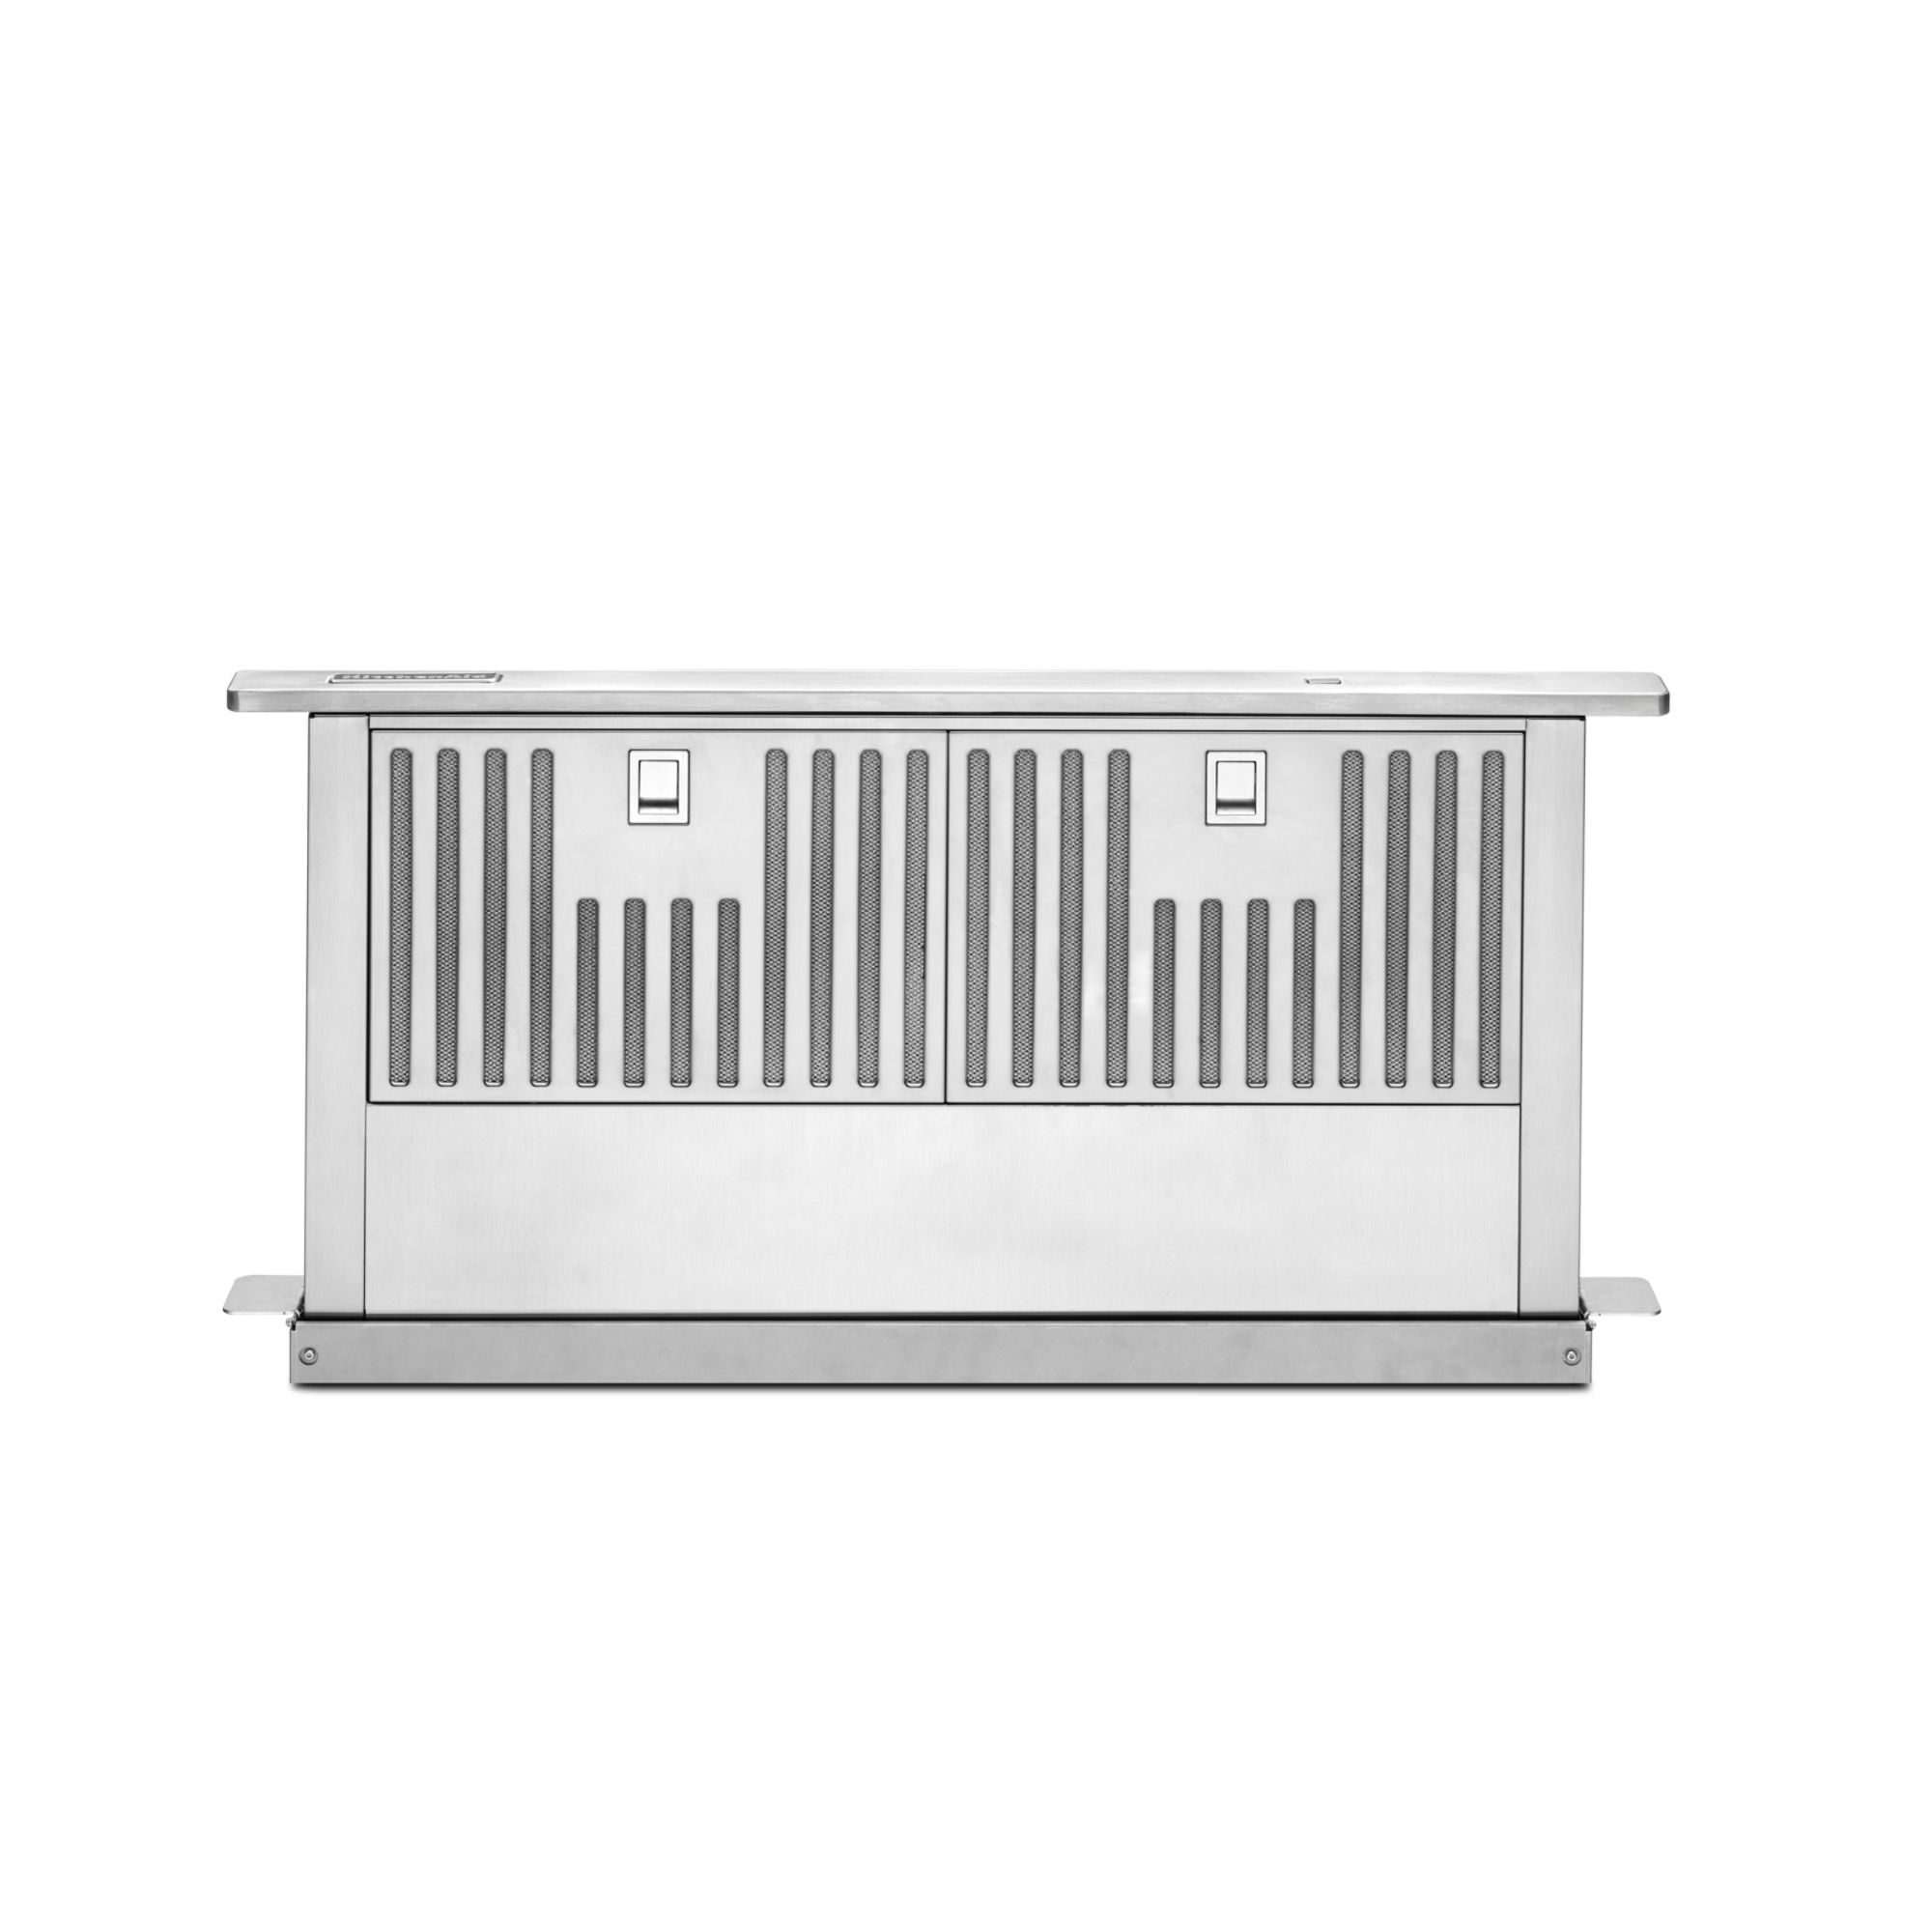 KitchenAid KXD4630YSS 30 in. Specialty Series Retractable Downdraft Vent Hood - Stainless Steel